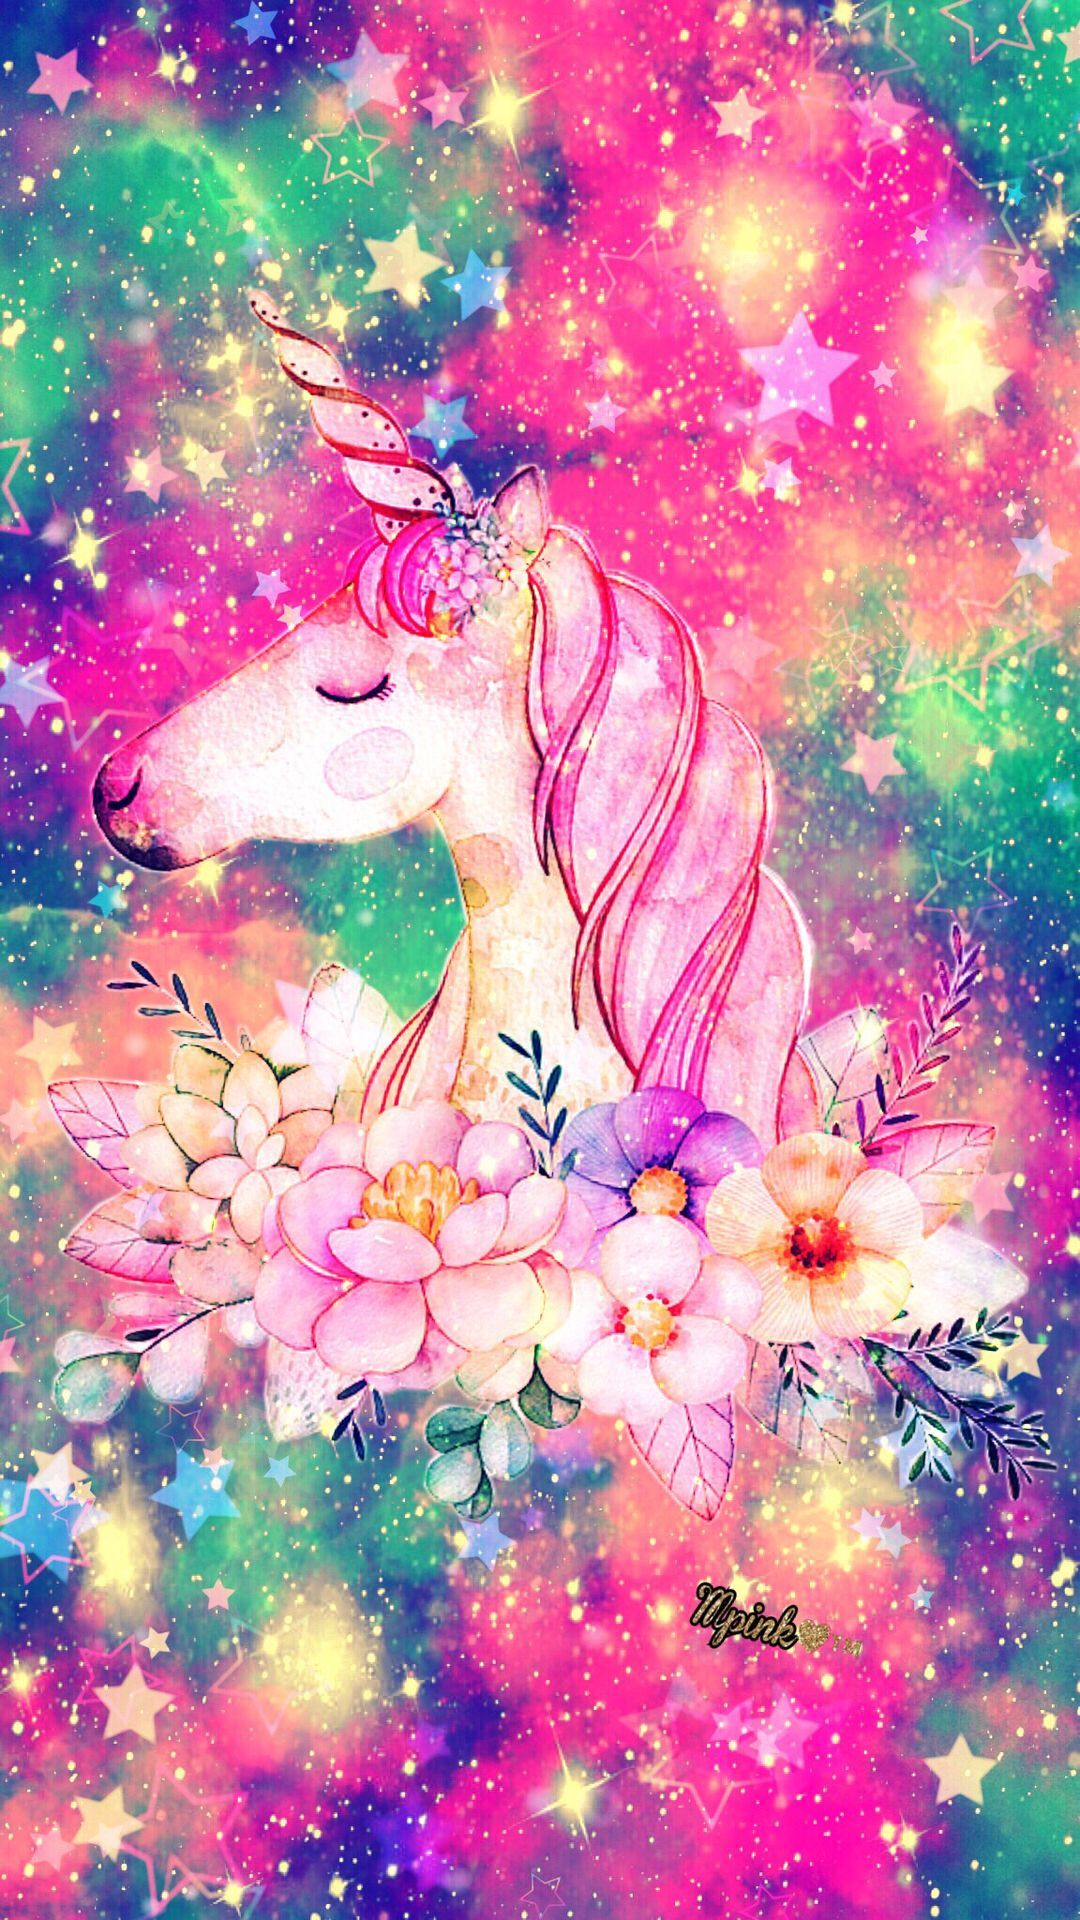 ⭐Explore more Wallpapers Unicorn wallpaper, Iphone